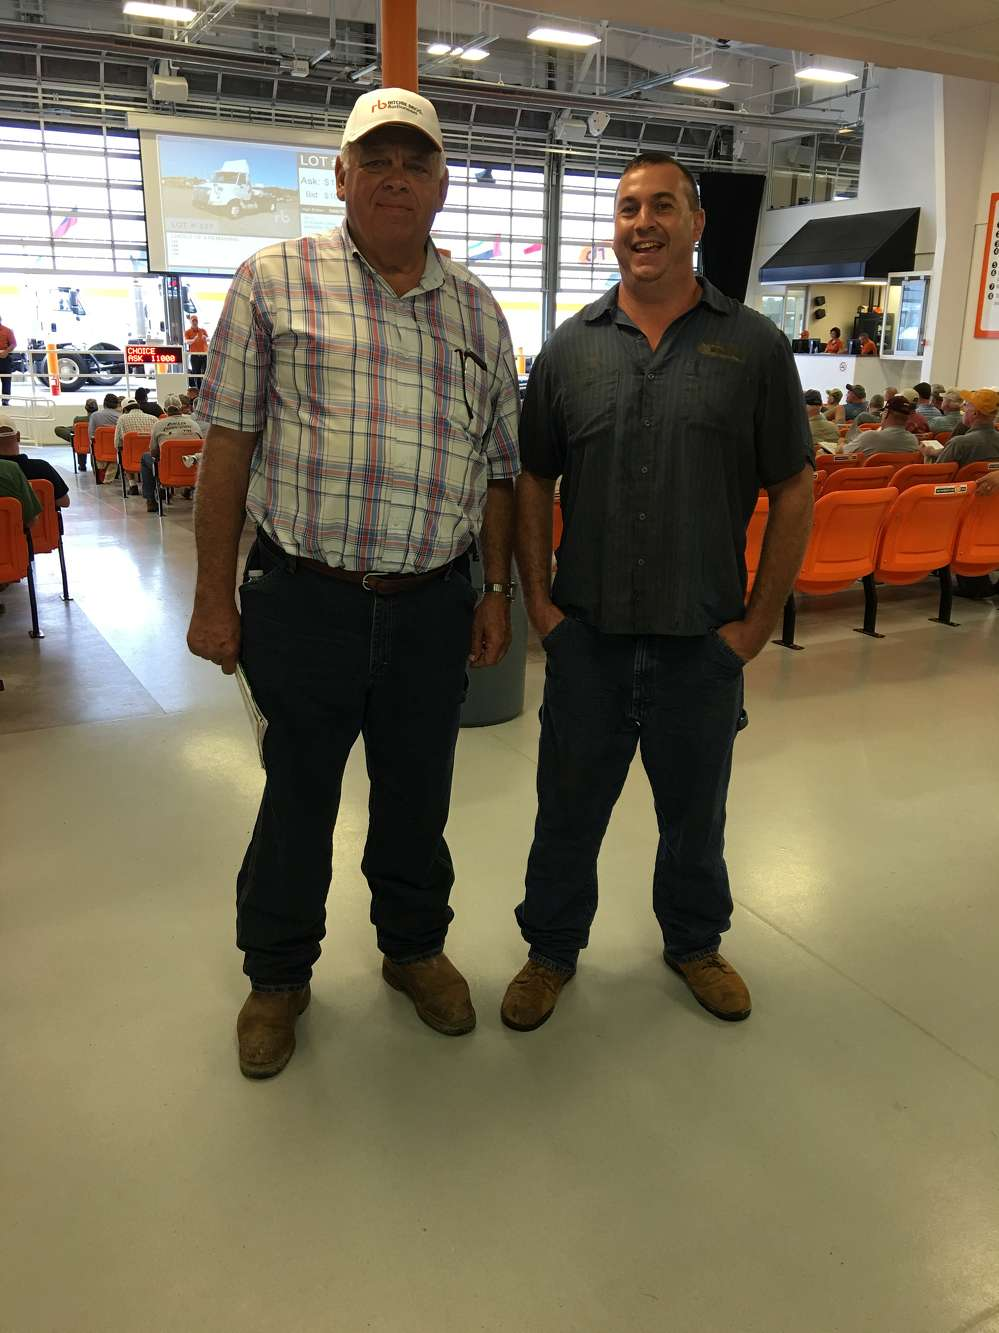 Rick Sowers of Sowers Construction Company in Mt. Airy, N.C., and John Earles of JSE Excavating in Fieldale, Va., follow the sale.